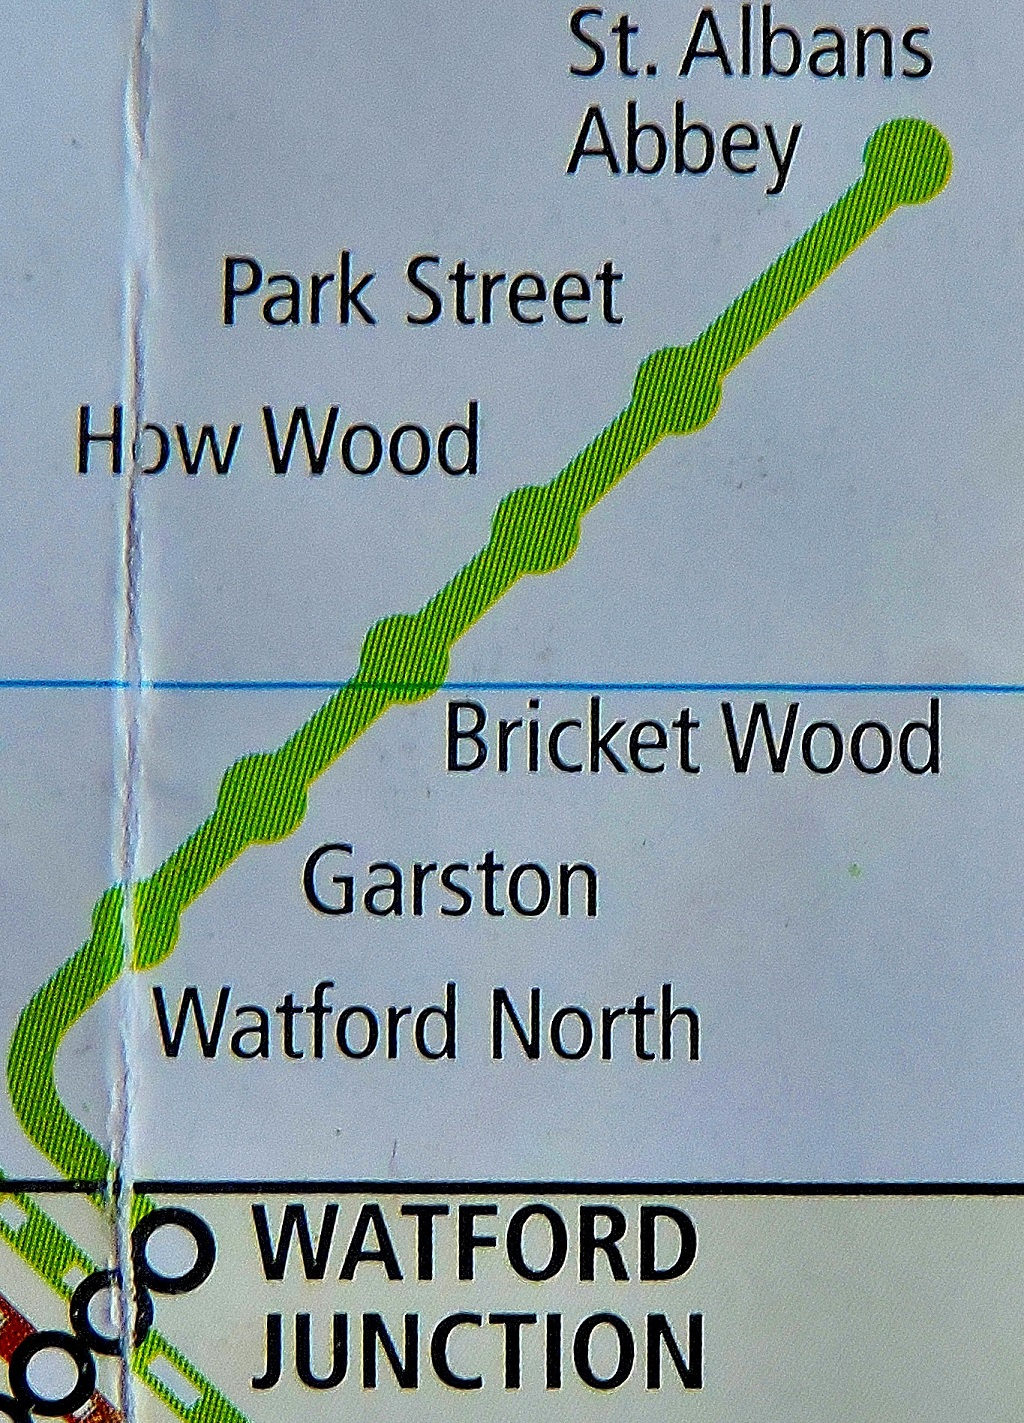 A closer focus on the branch and two St Albans stations.